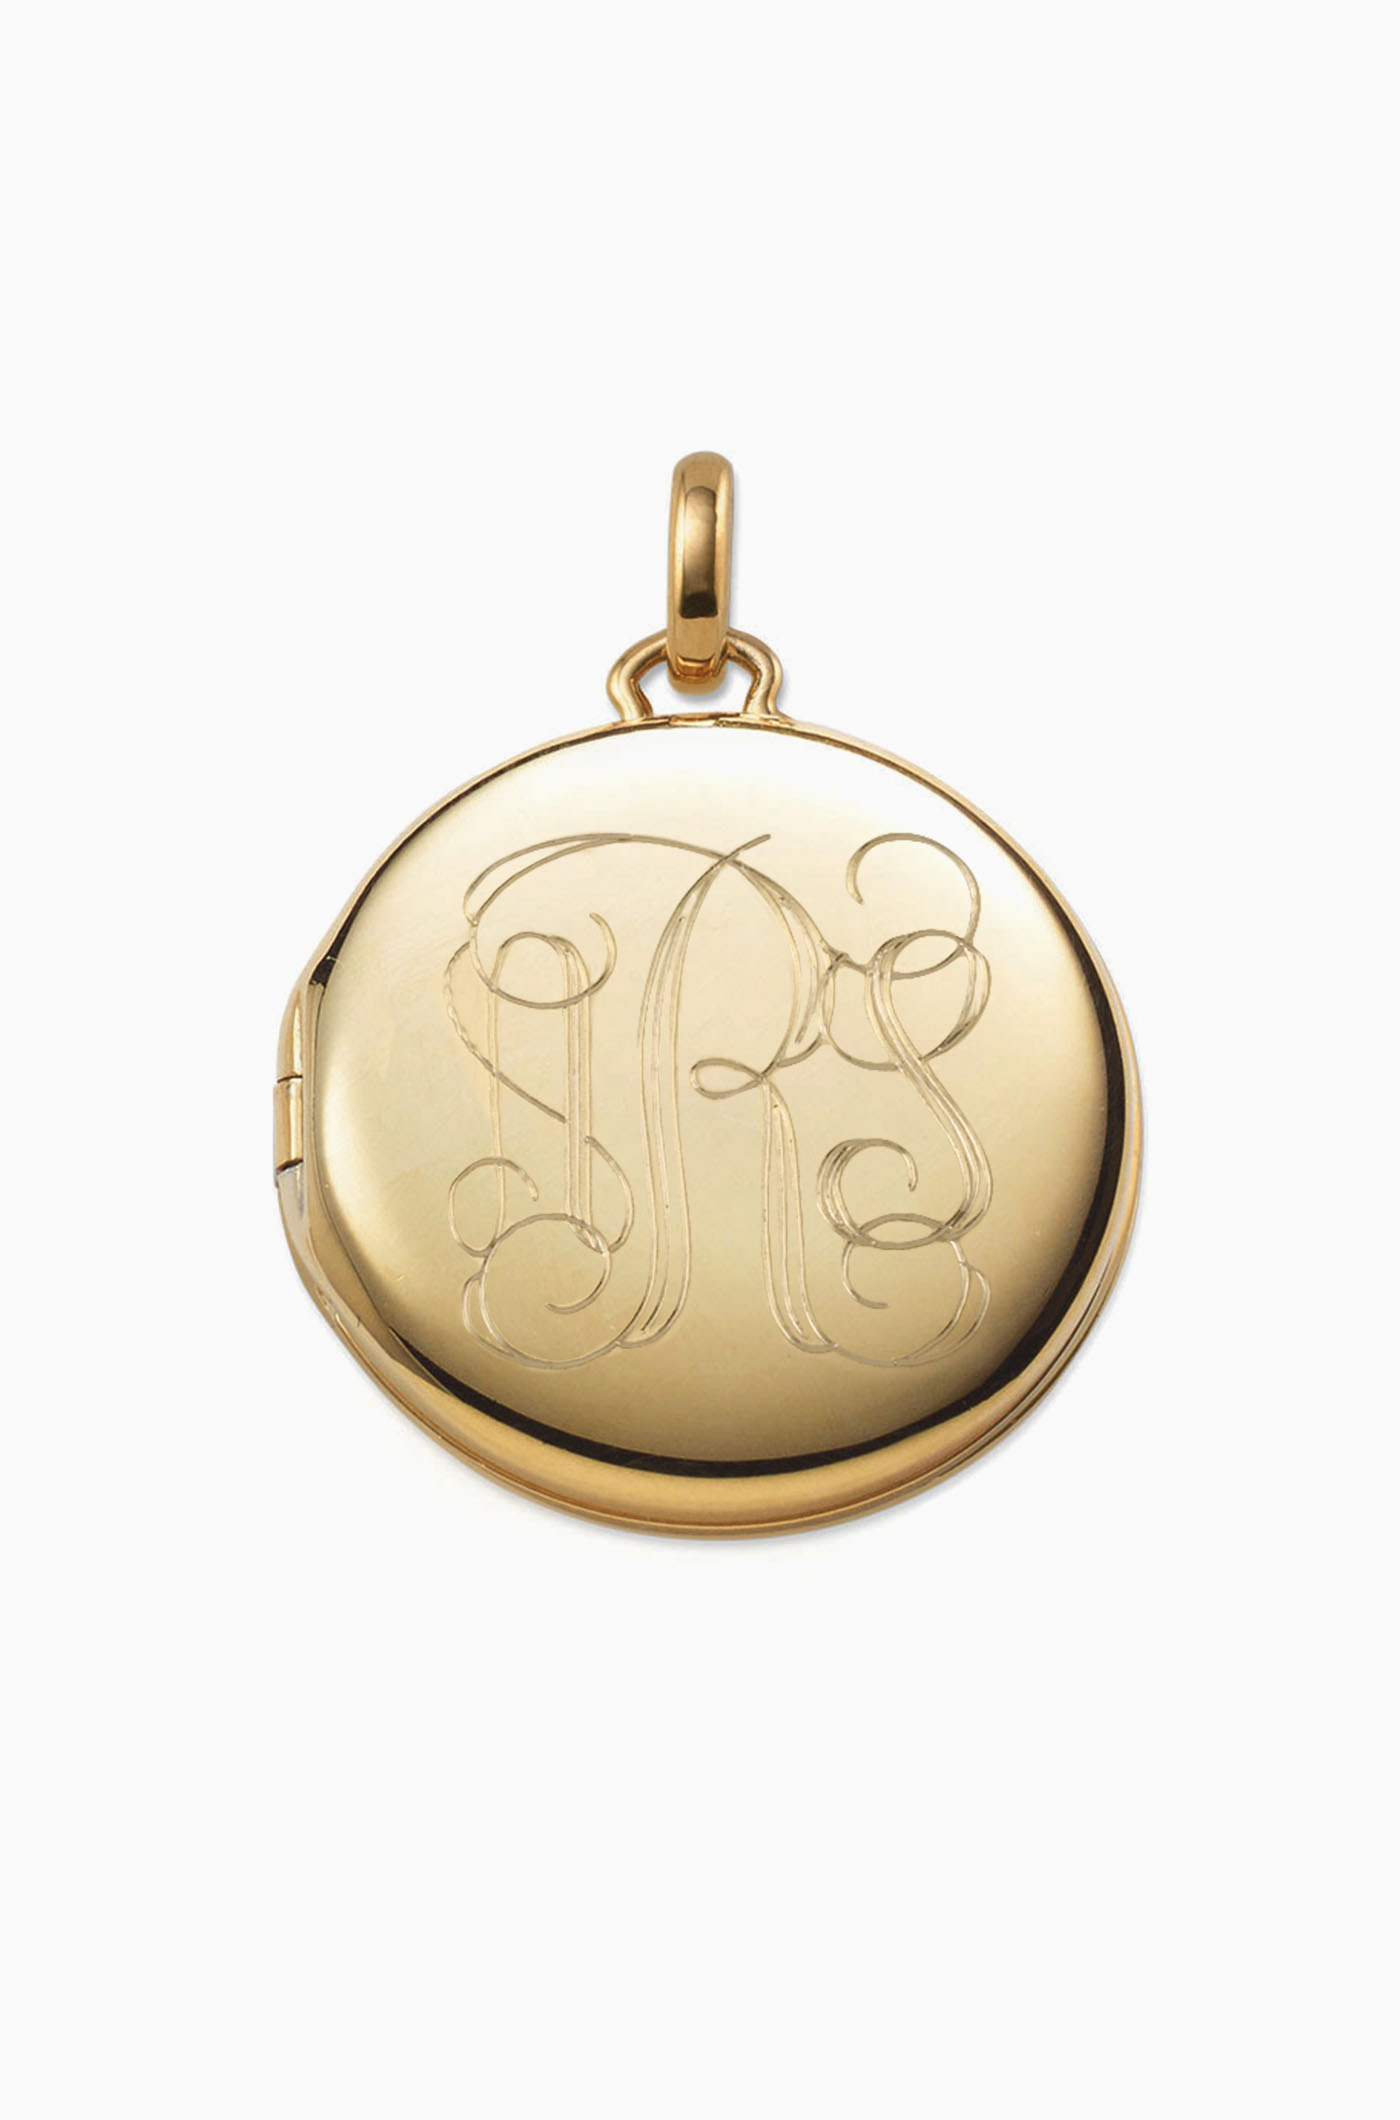 monogram monogrammed antique il h locket listing engraved w fullxfull gold filled lockets zoom